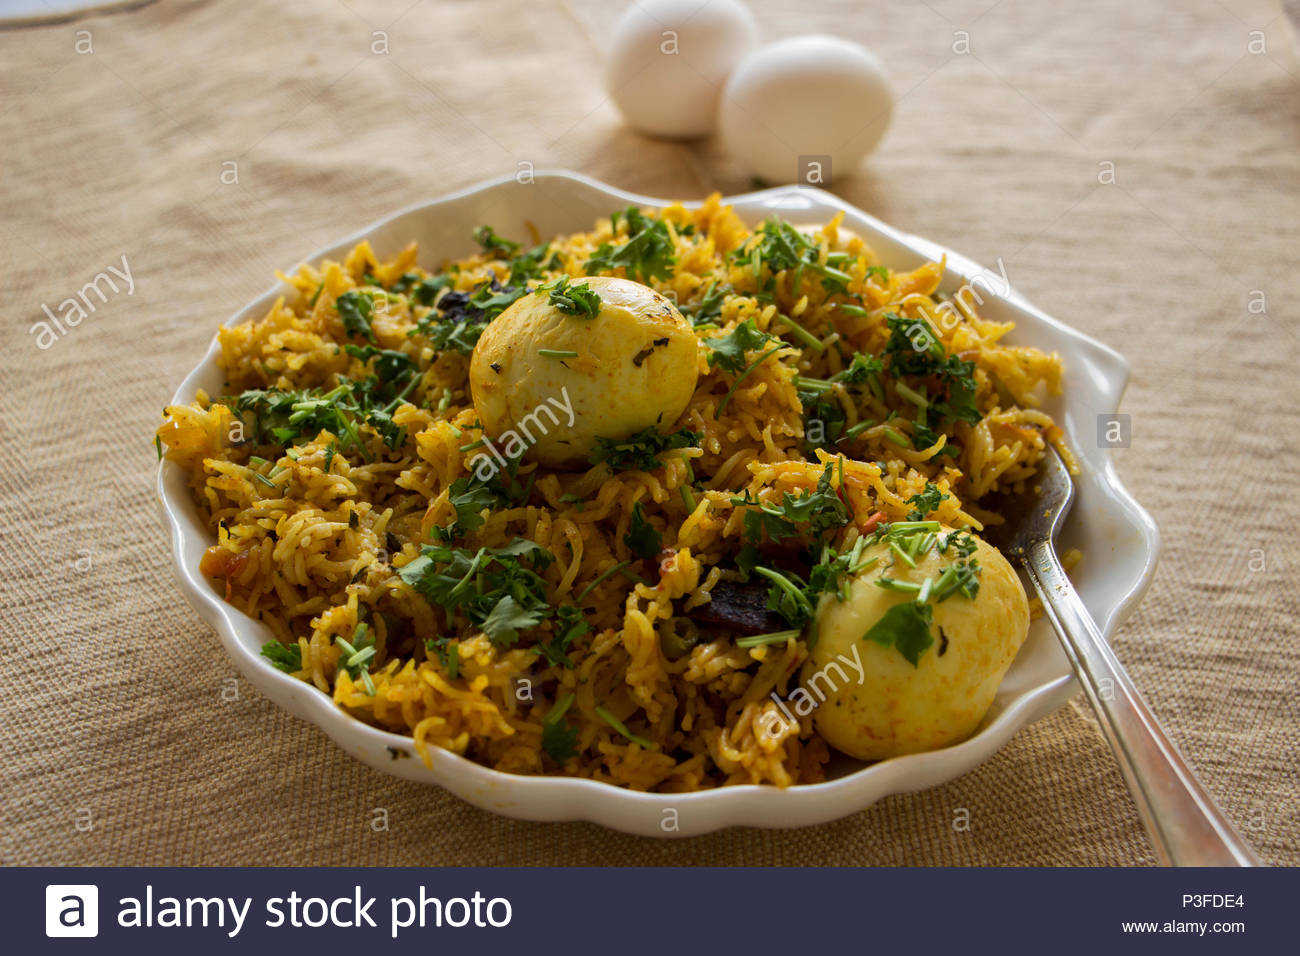 Egg biryani is a quick flavourful and delicious rice based dish egg biryani is a quick flavourful and delicious rice based dish from india forumfinder Choice Image